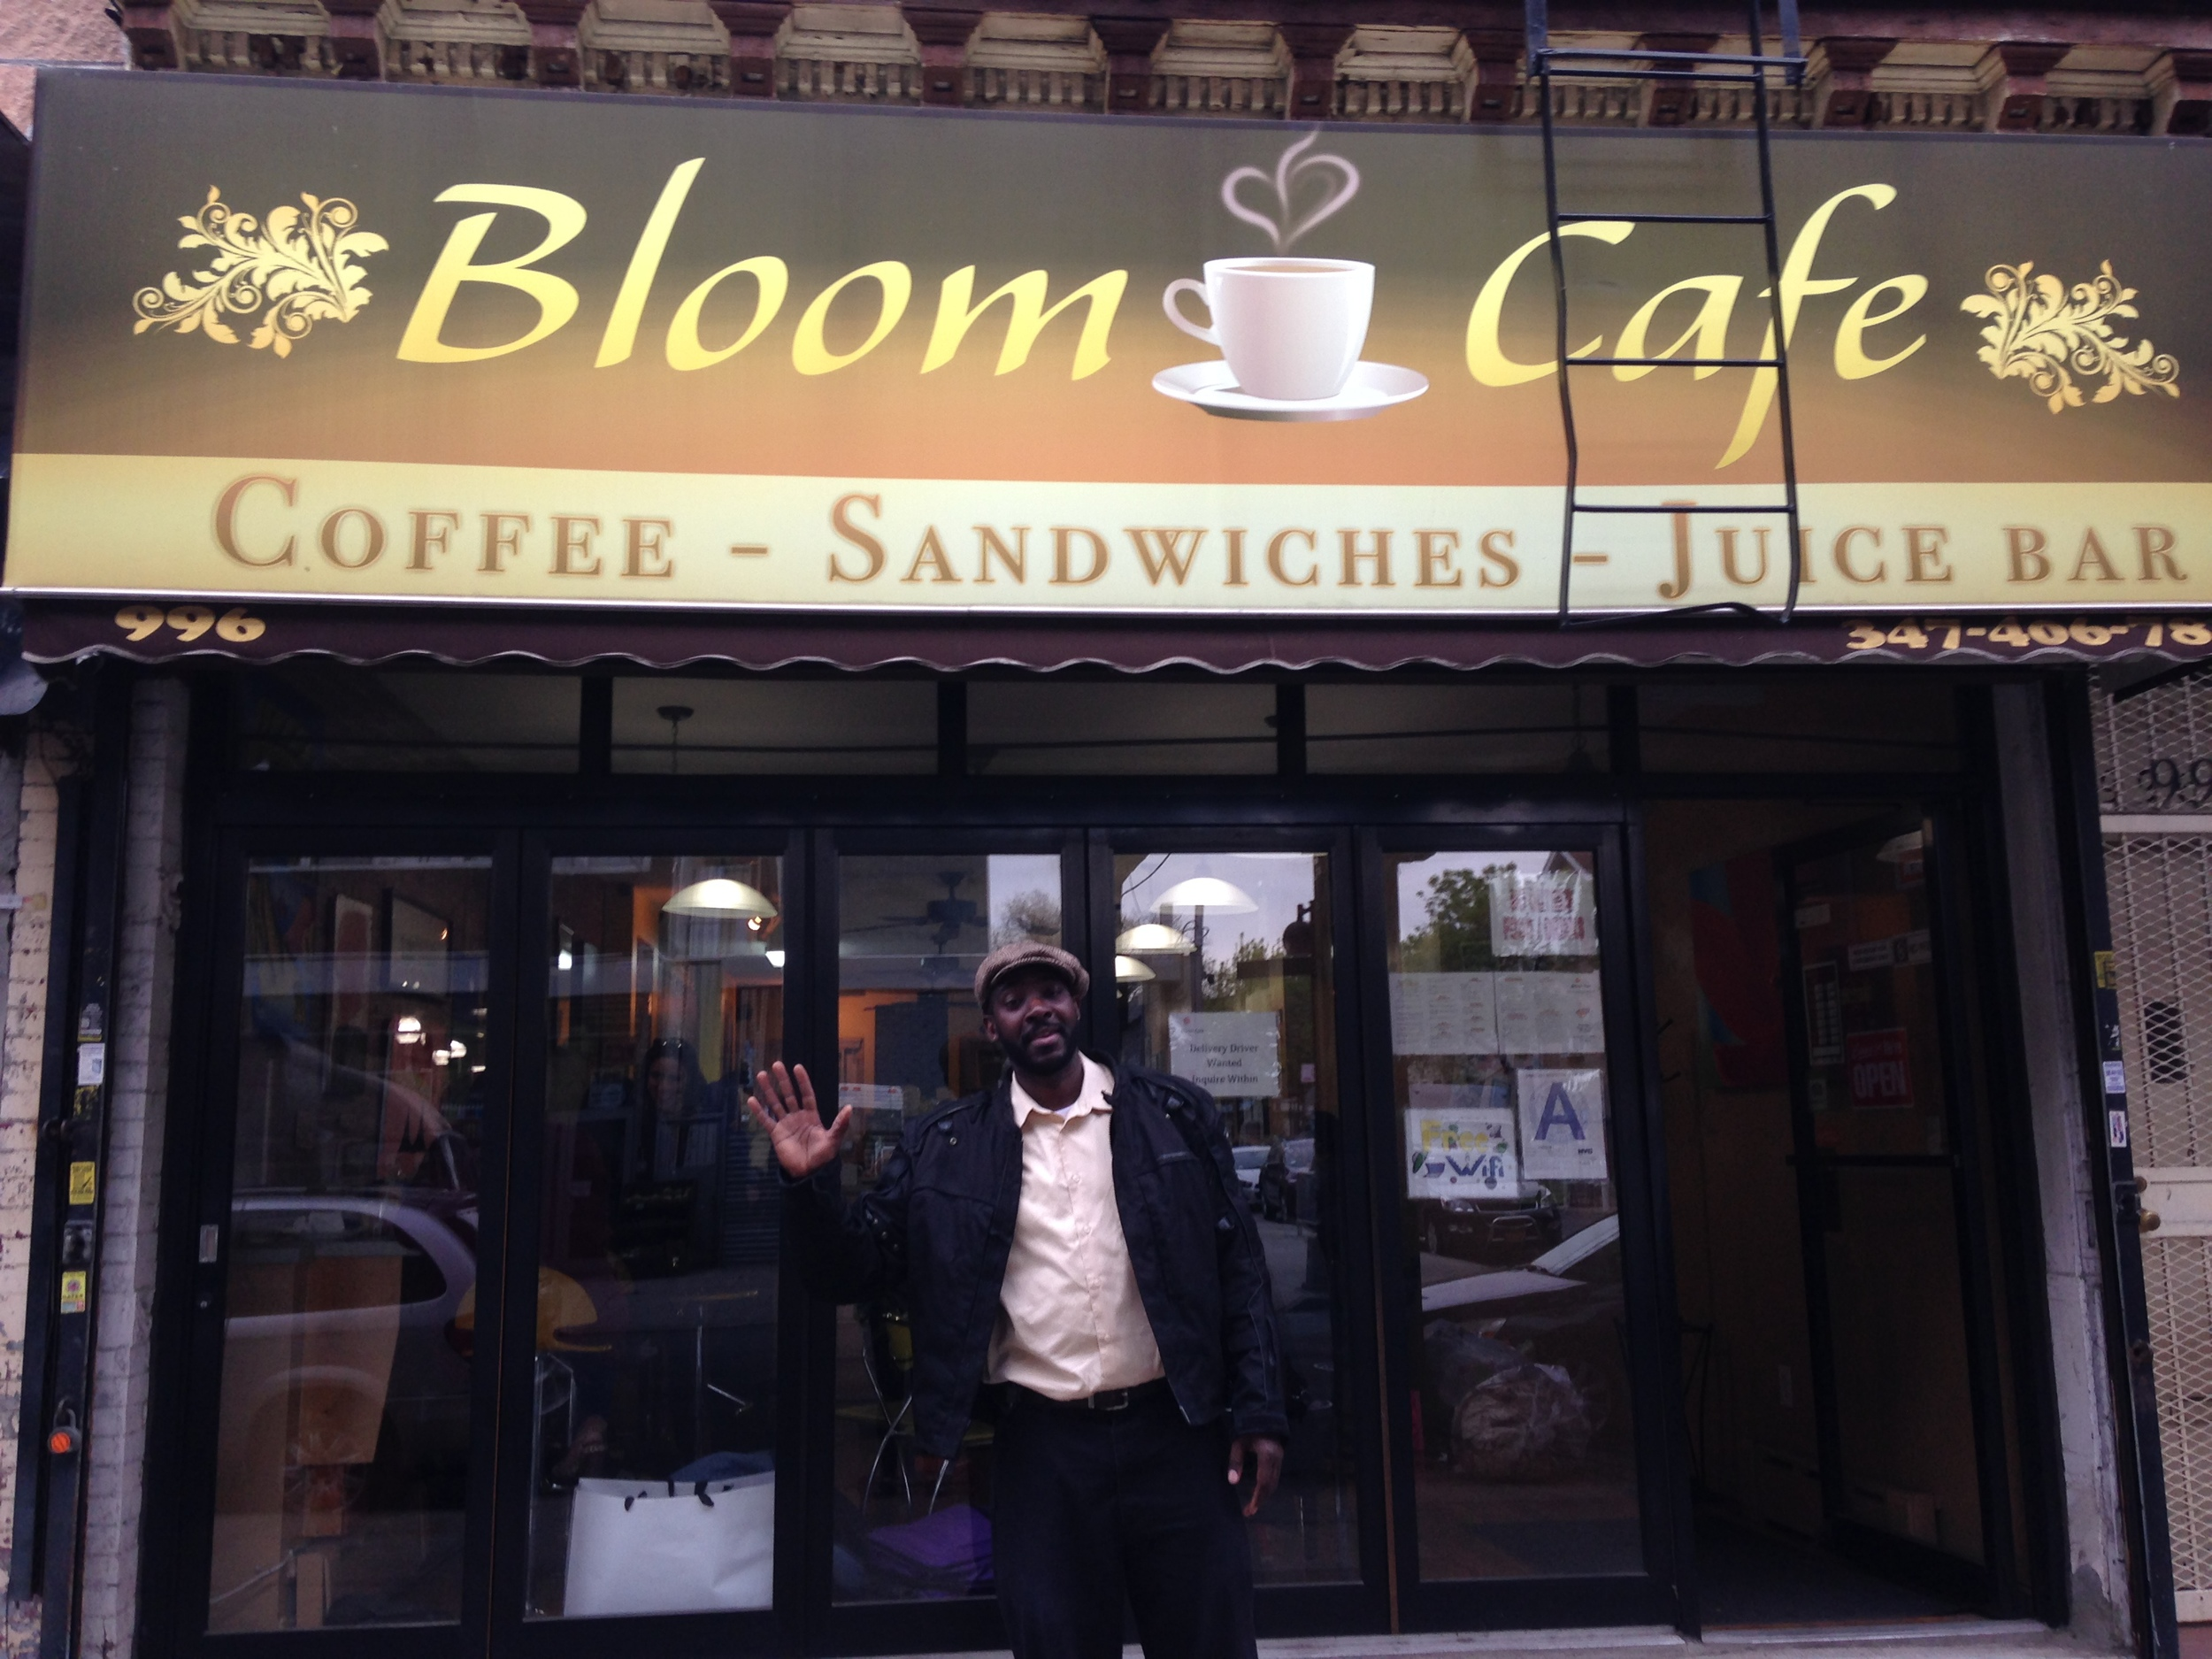 Duane Coates, co-owner of Bloom Cafe, greats newcomers and natives alike.